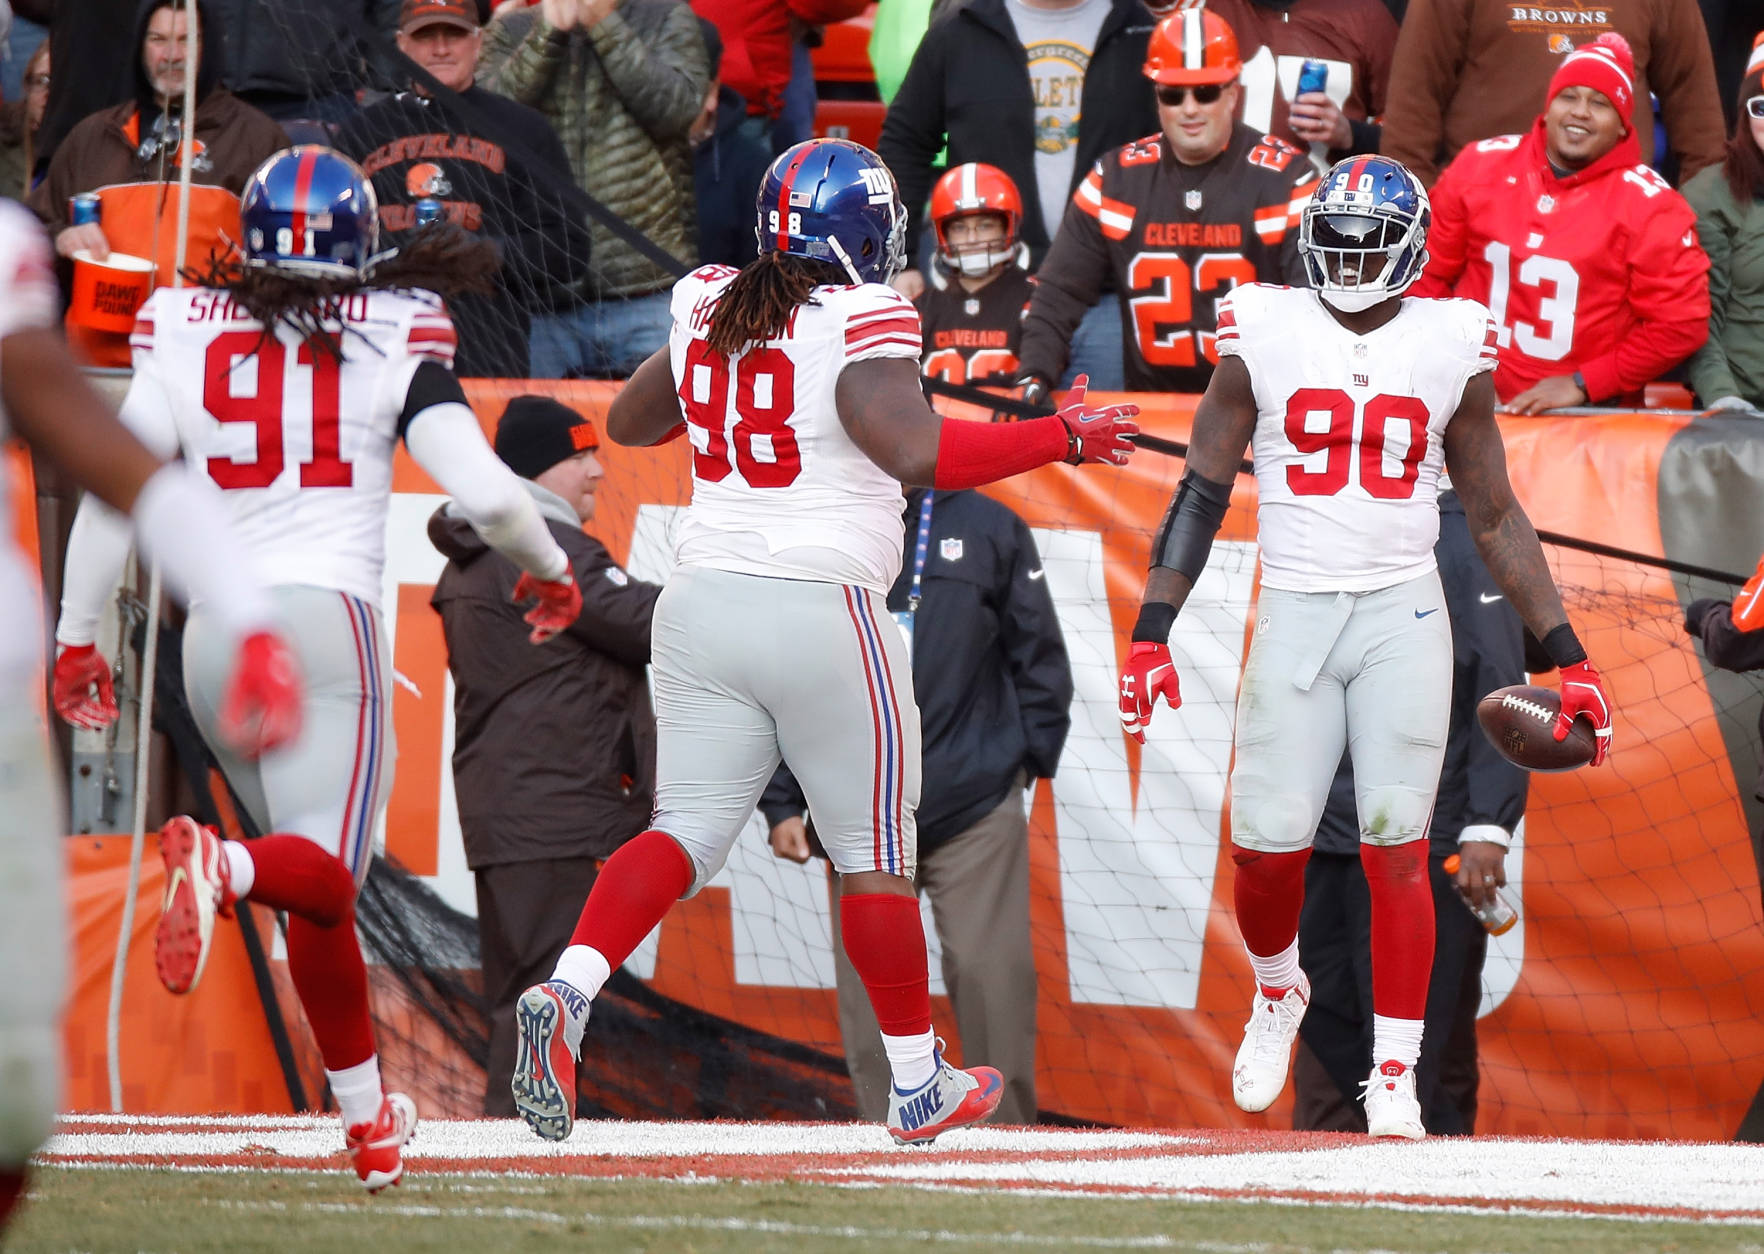 CLEVELAND, OH - NOVEMBER 27:  Jason Pierre-Paul #90 of the New York Giants celebrates his interception return for a touchdown with teammates during the fourth quarter against the Cleveland Browns at FirstEnergy Stadium on November 27, 2016 in Cleveland, Ohio. (Photo by Gregory Shamus/Getty Images)